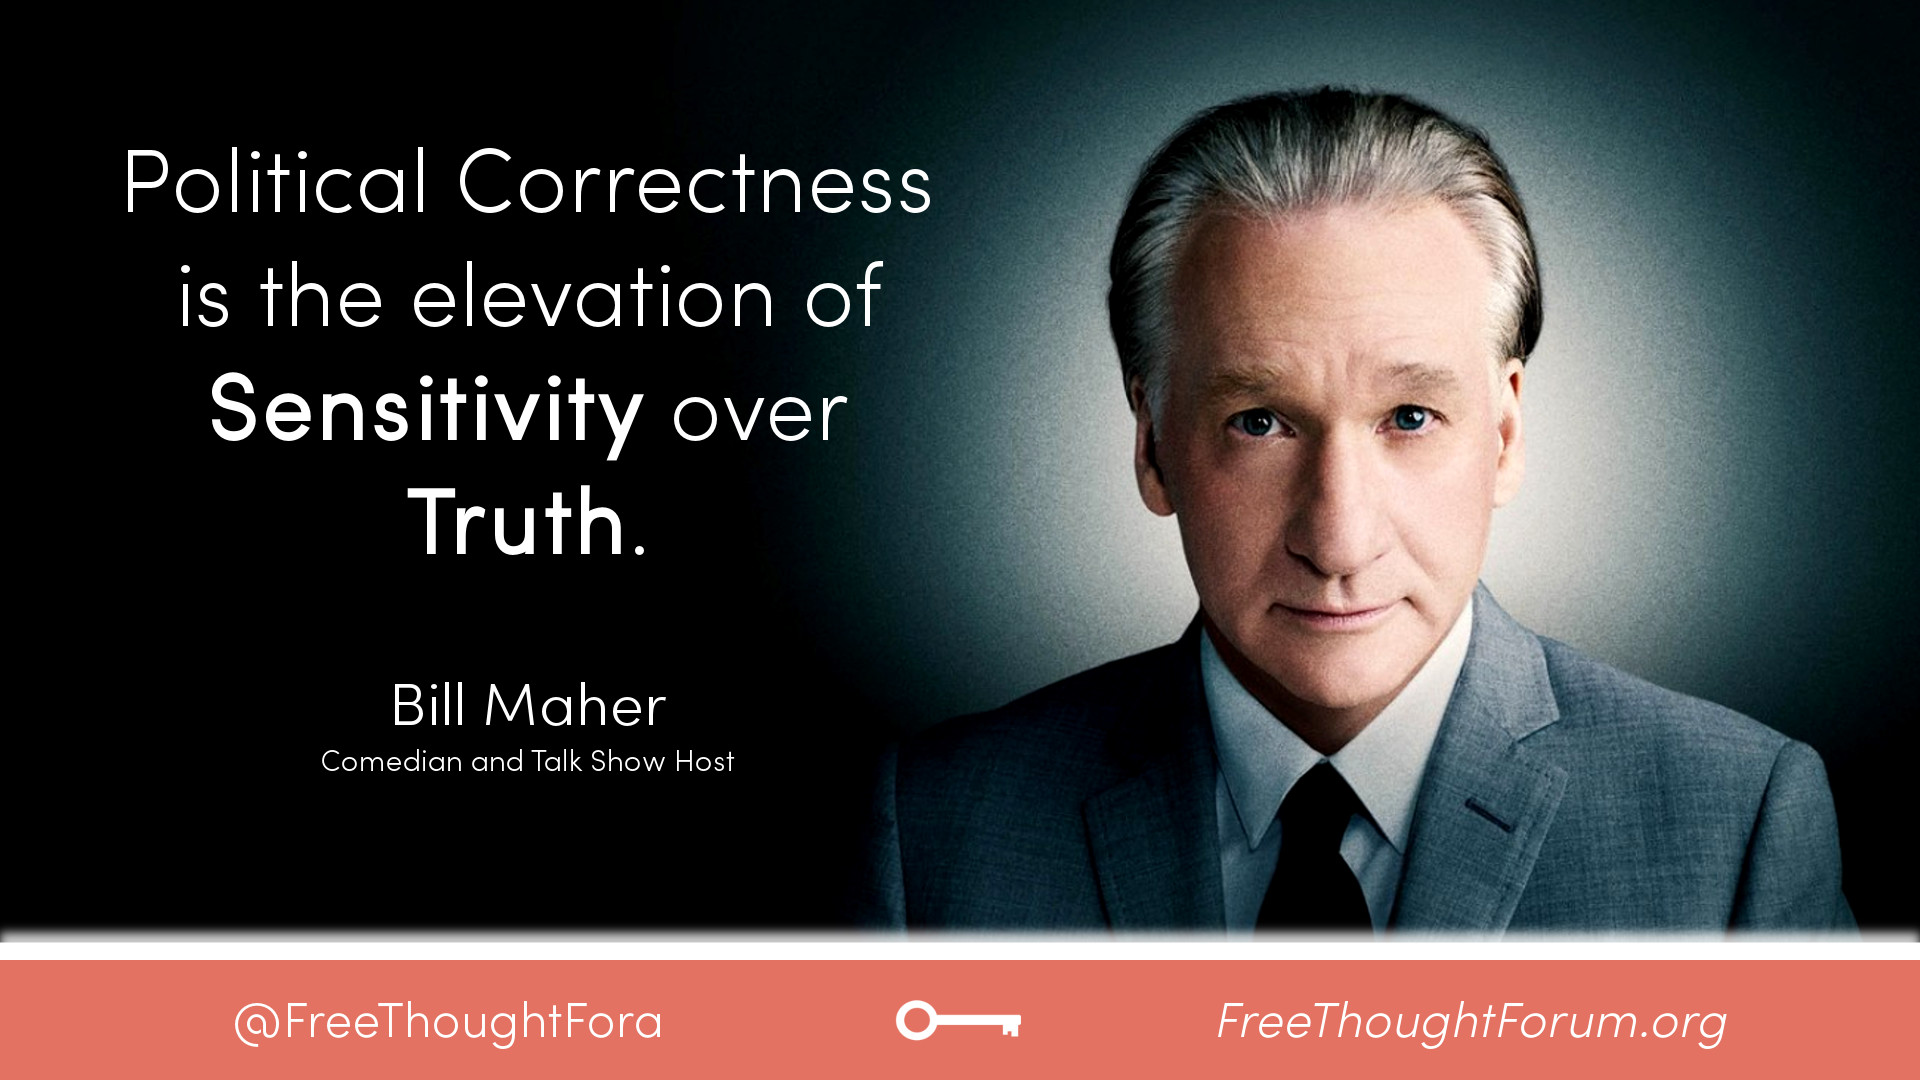 Political Correctness is the elevation of Sensitivity over Truth